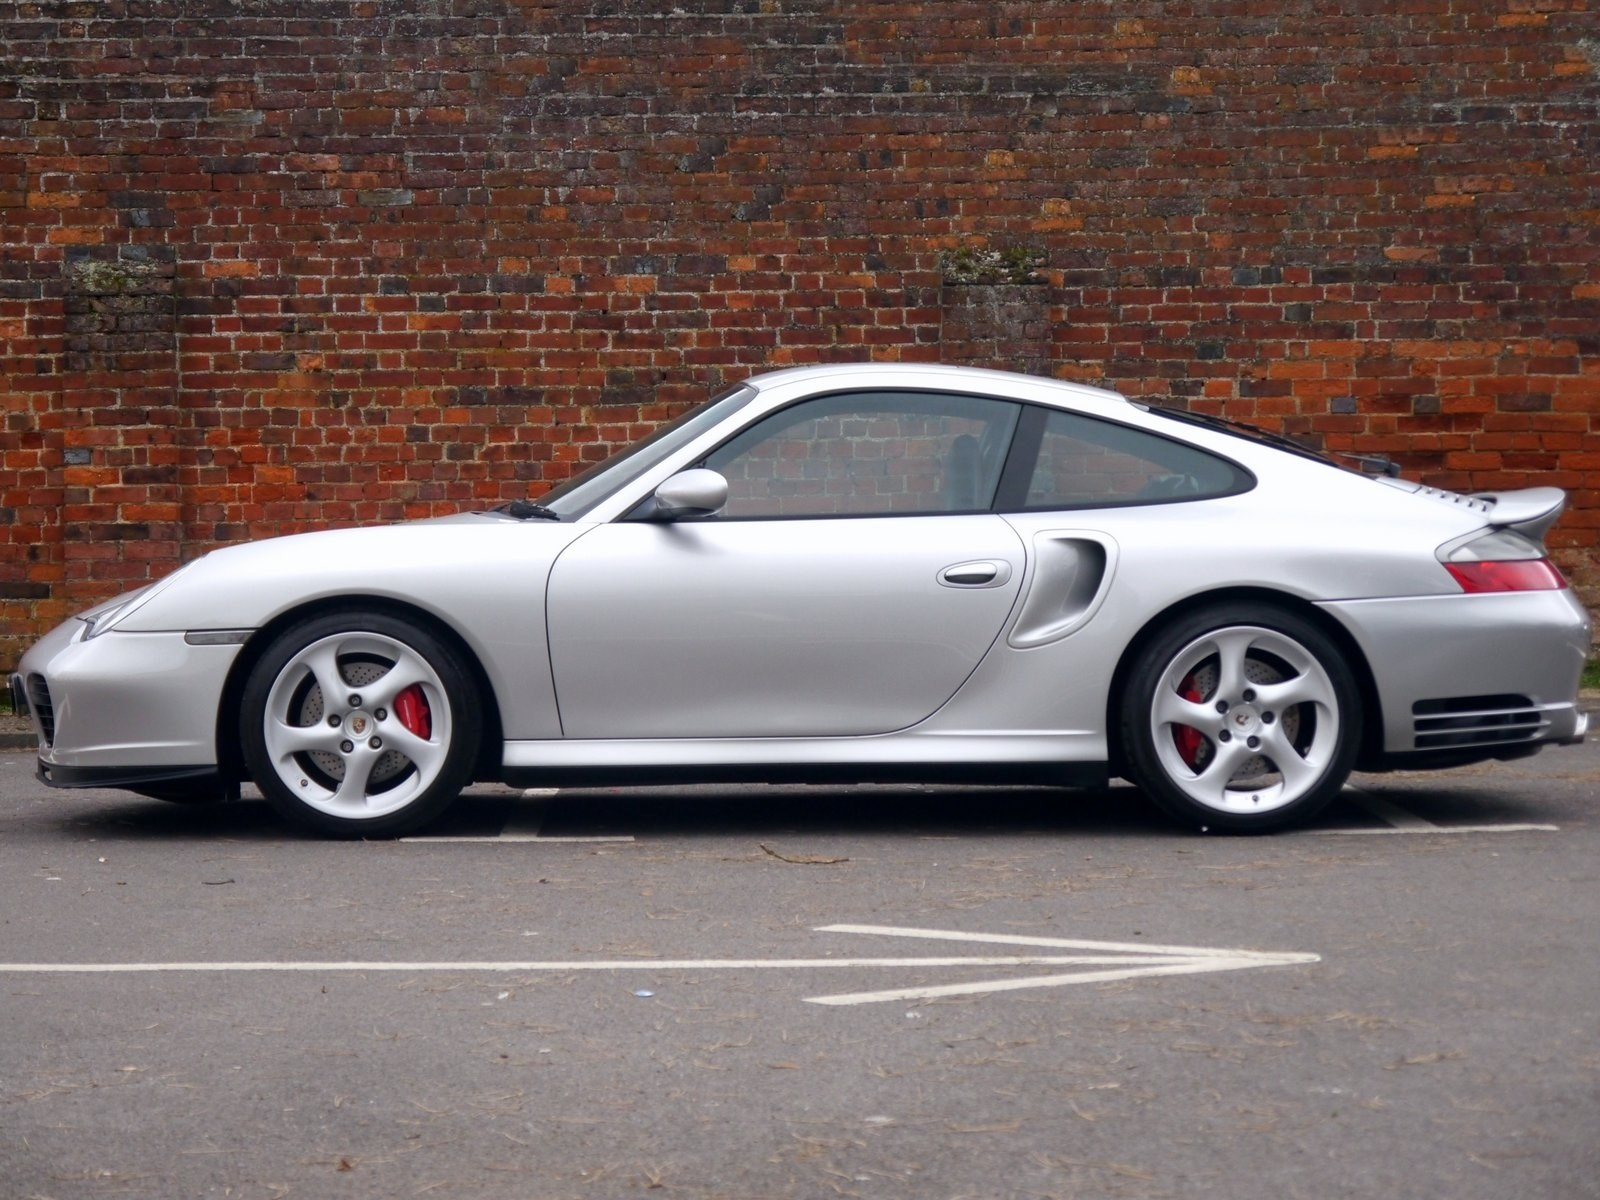 porsche 911 996 turbo tiptronic s - investment opportunity for sale